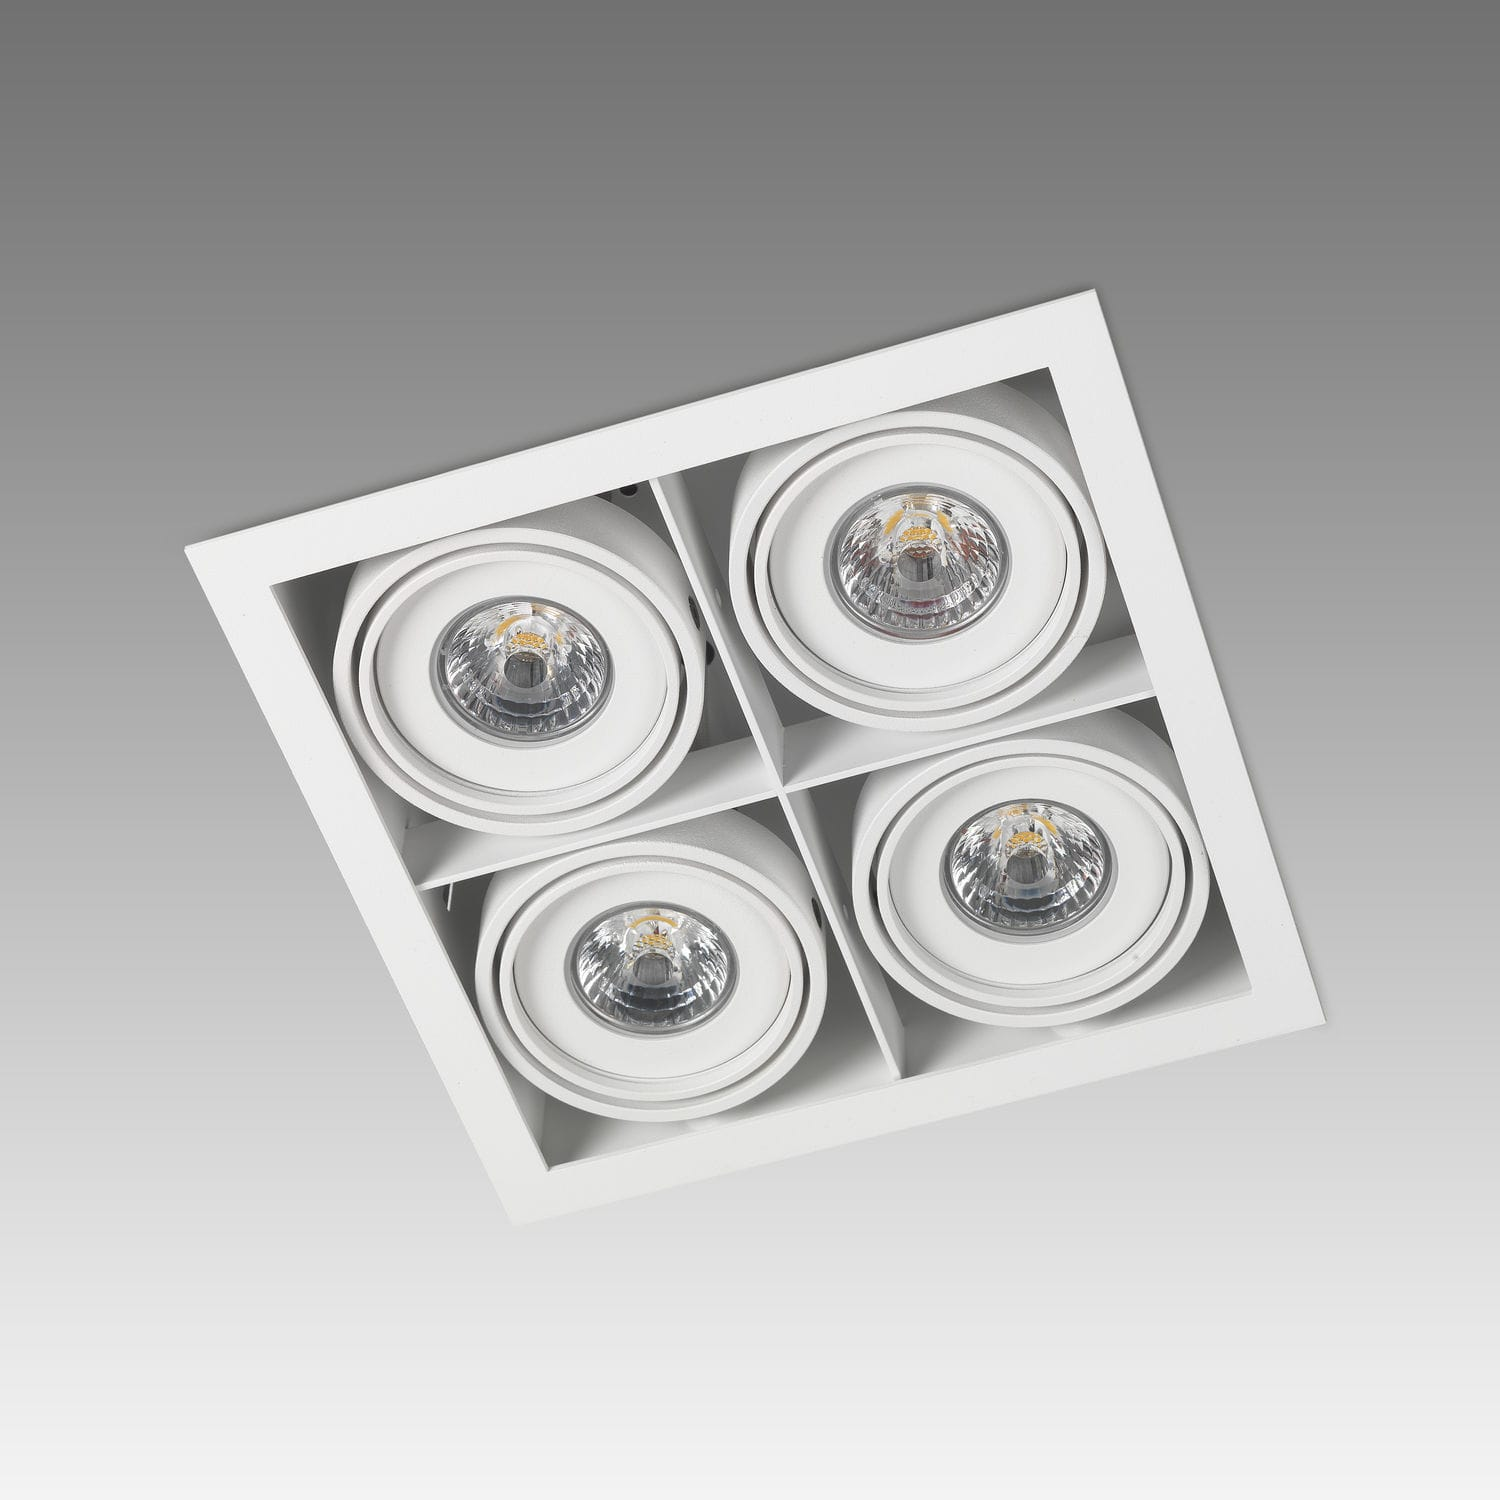 Recessed ceiling spotlight / indoor / LED / square - PICCOLO FRAME ... for Ceiling Double Spot Light  58lpg